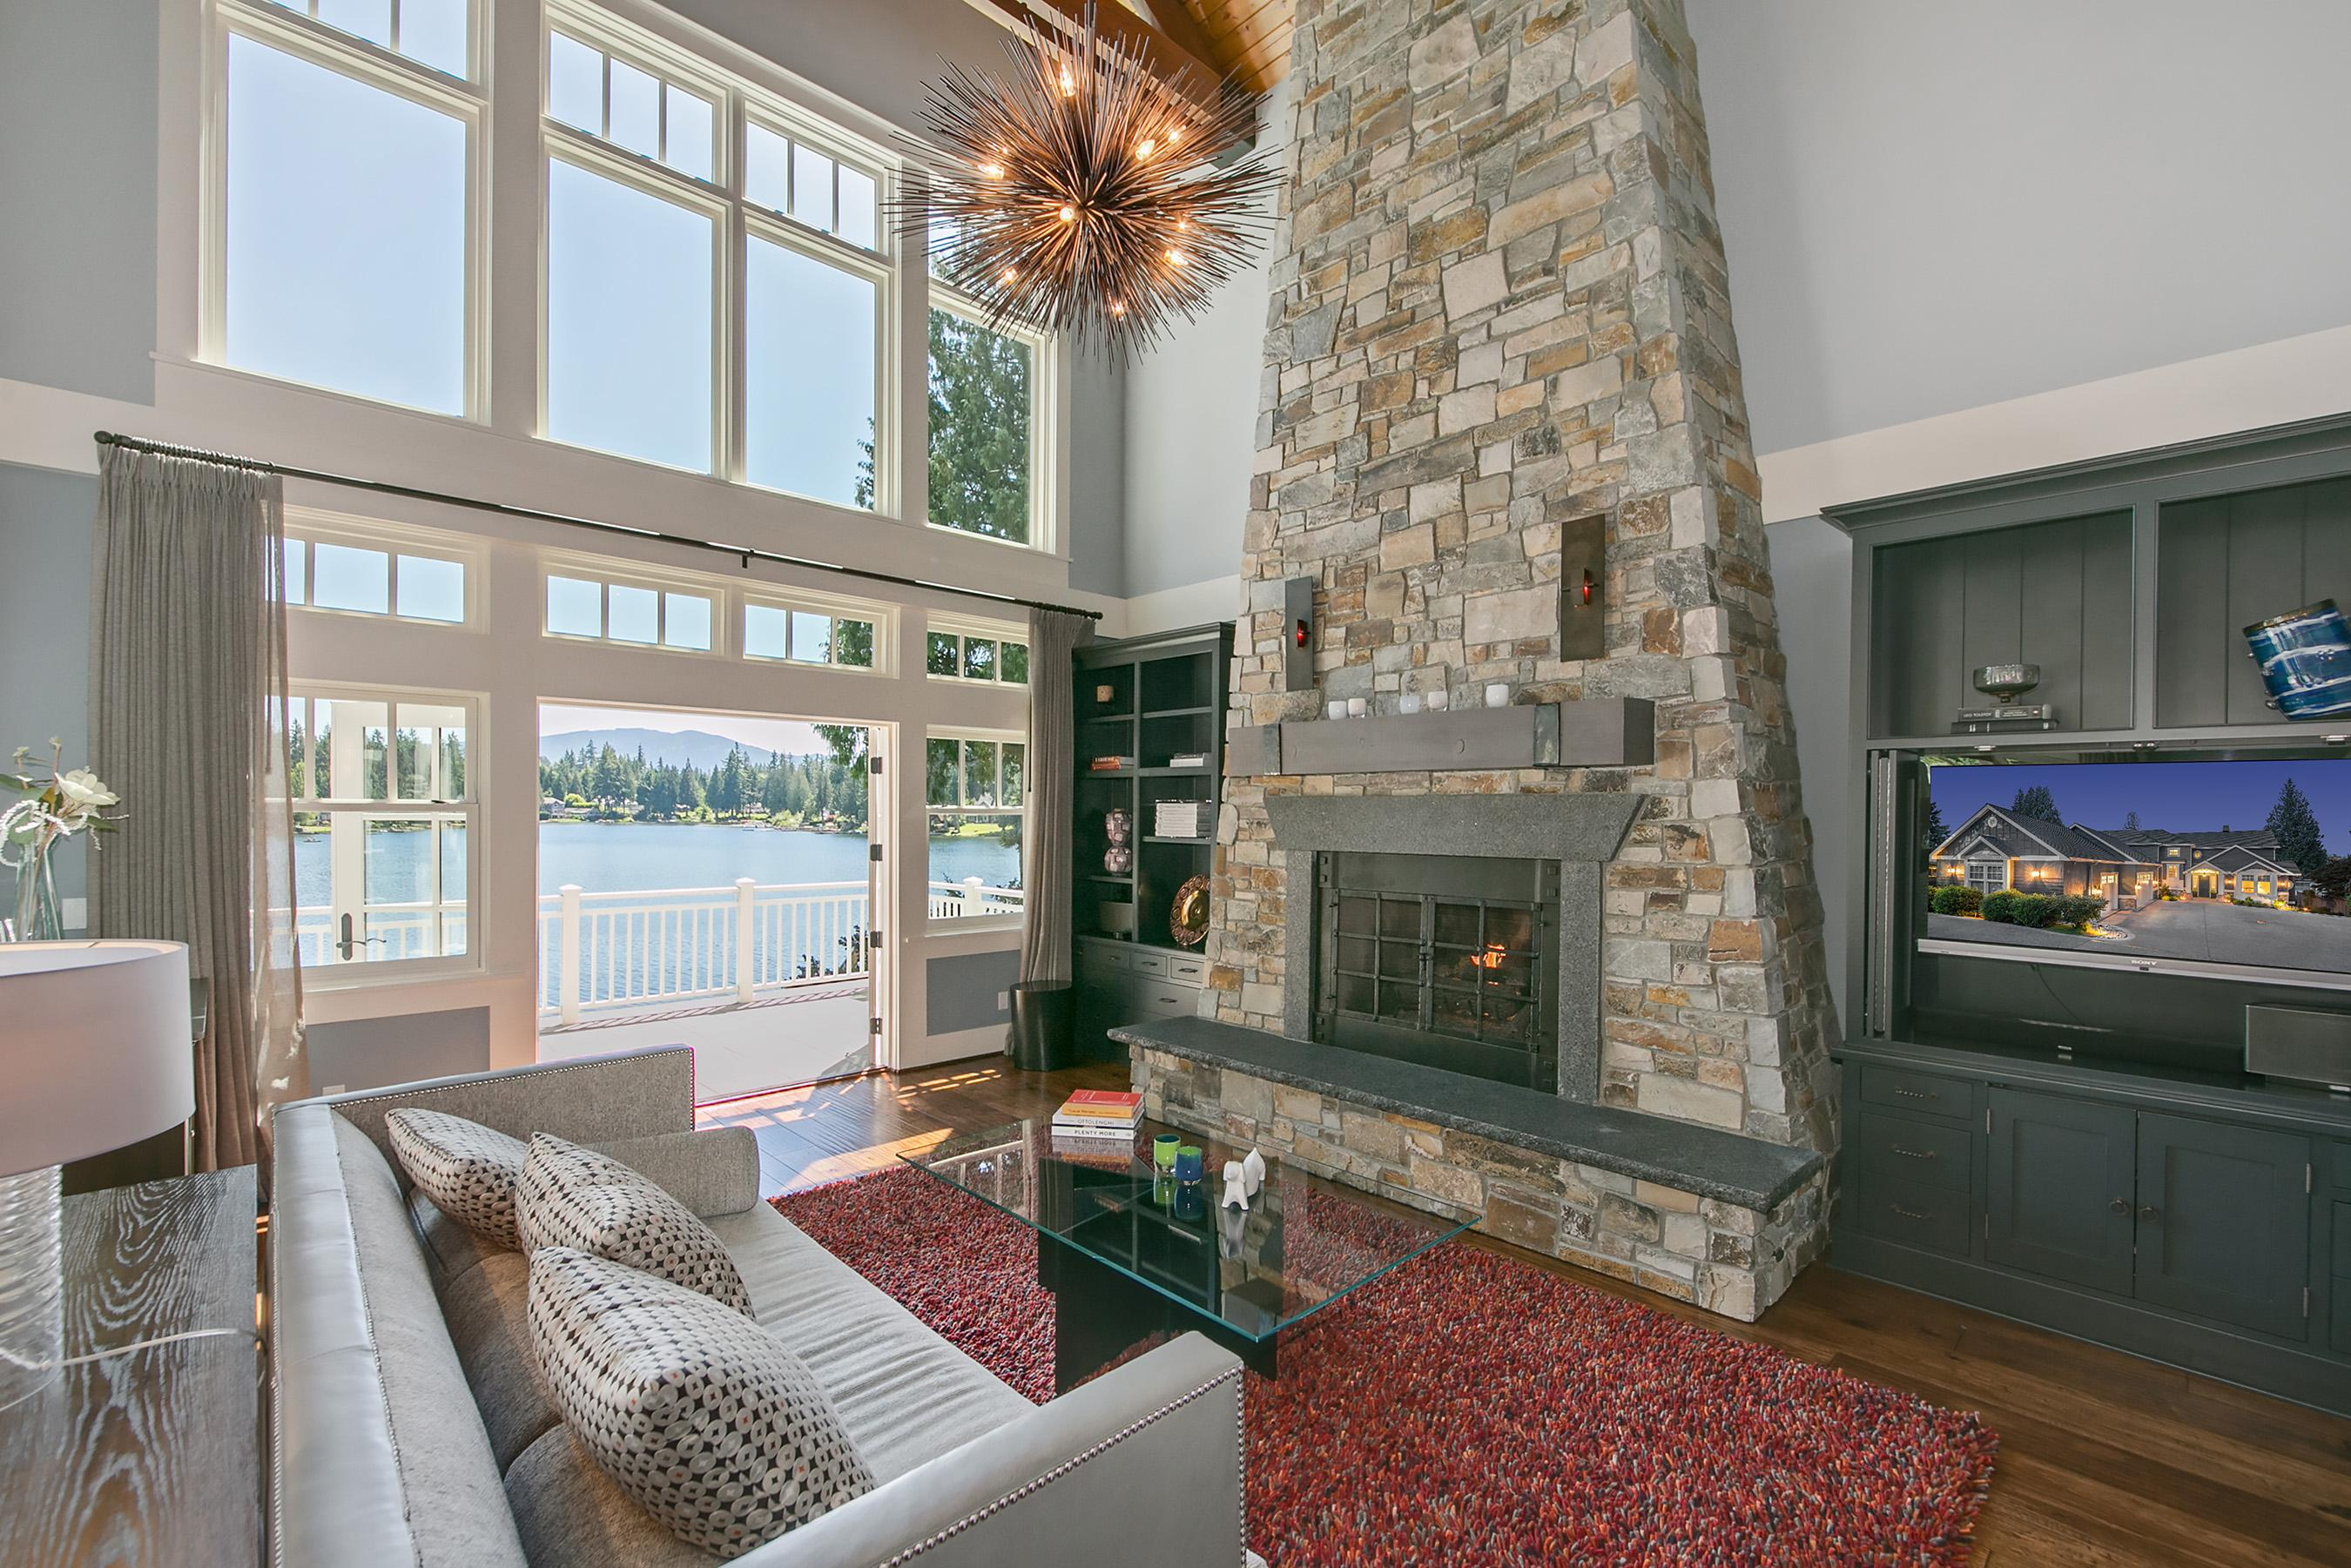 The great room on the main level stars a soaring fireplace made of river rock and three French doors that open onto an expansive patio.